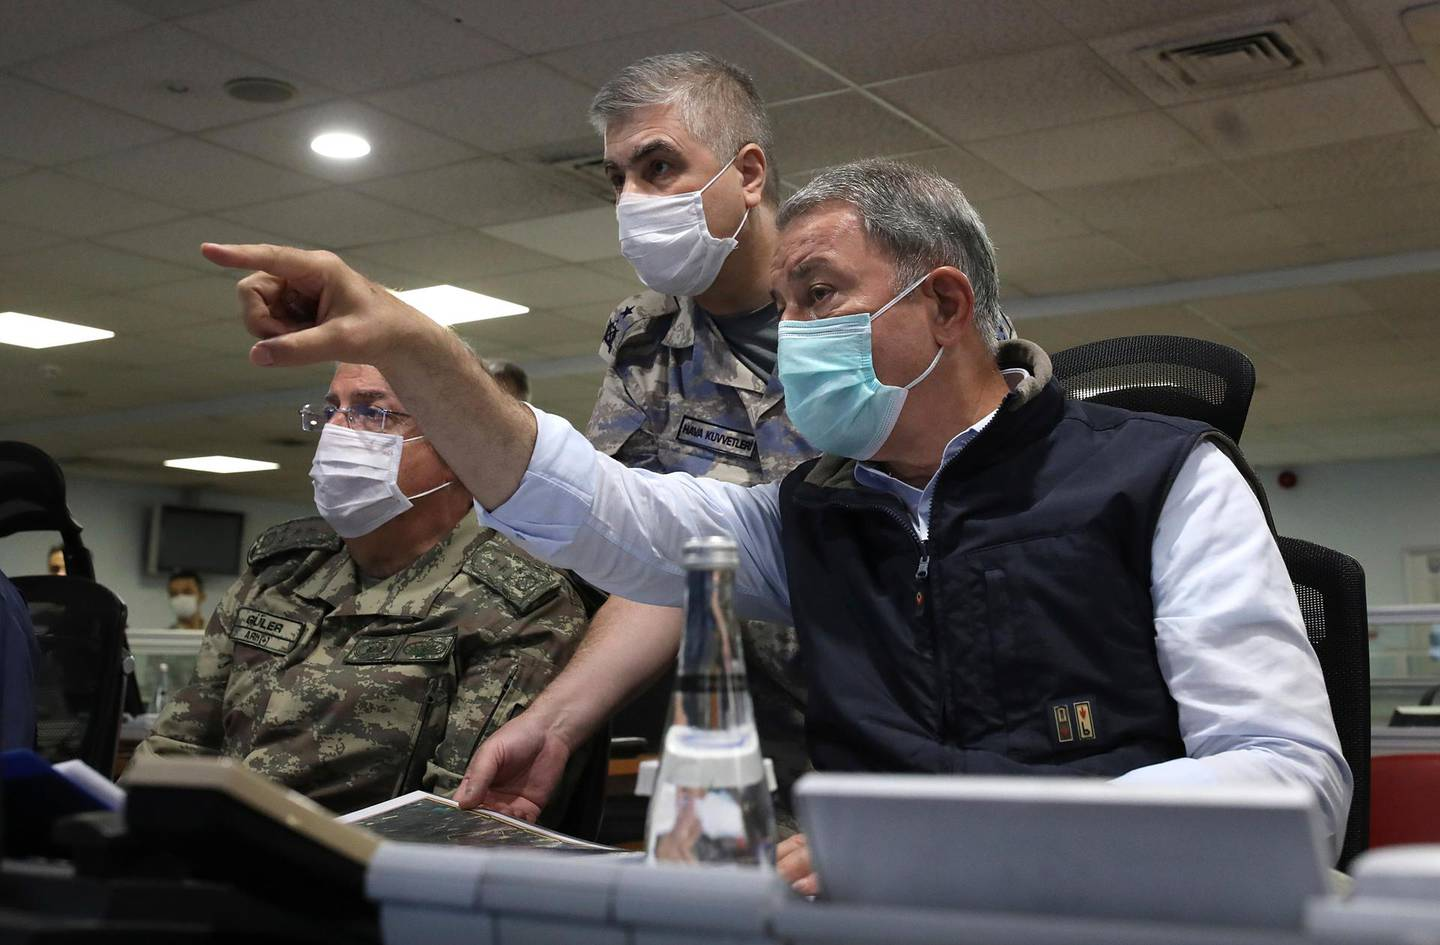 Turkish Defense Minister Hulusi Akar, right, and army commanders wearing face masks to protect against the coronavirus, speak at a military headquarter, in Ankara, Turkey, Monday, June 15, 2020. Turkey's jets have carried out new cross-border air strikes against outlawed Kurdish rebel targets in northern Iraq, the Turkish Defense Ministry said Monday. (Turkish Defense Ministry via AP, Pool)